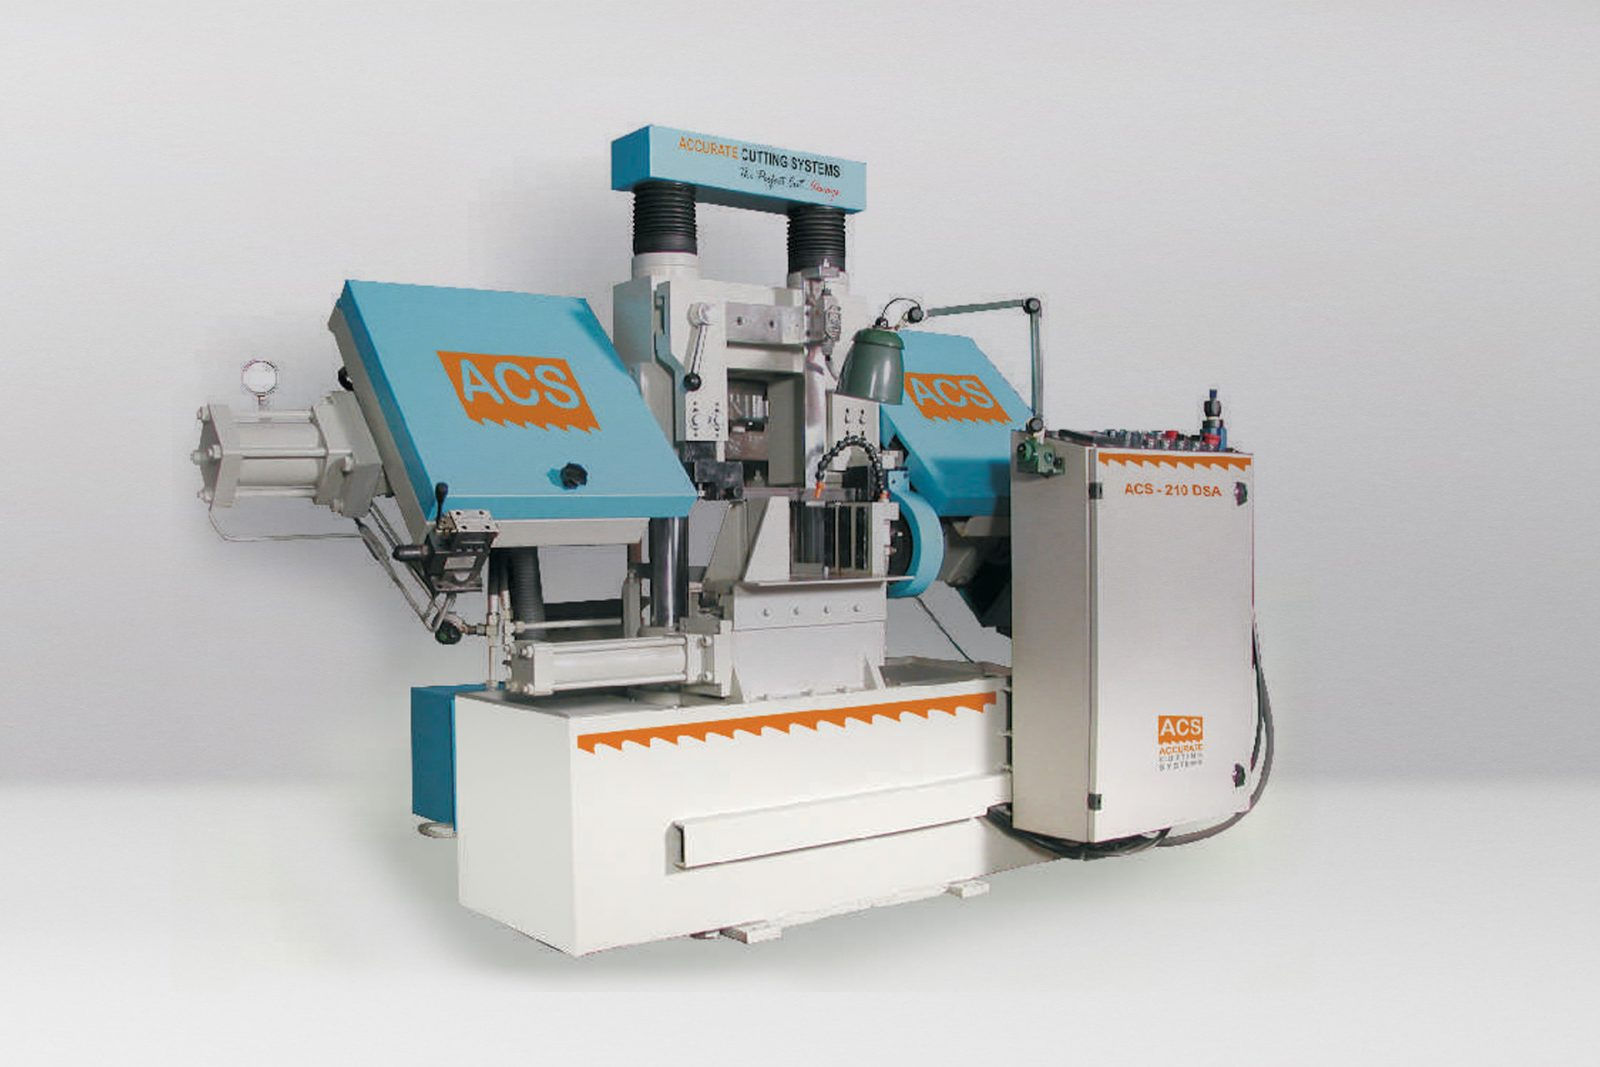 Accurate Cutting Systems